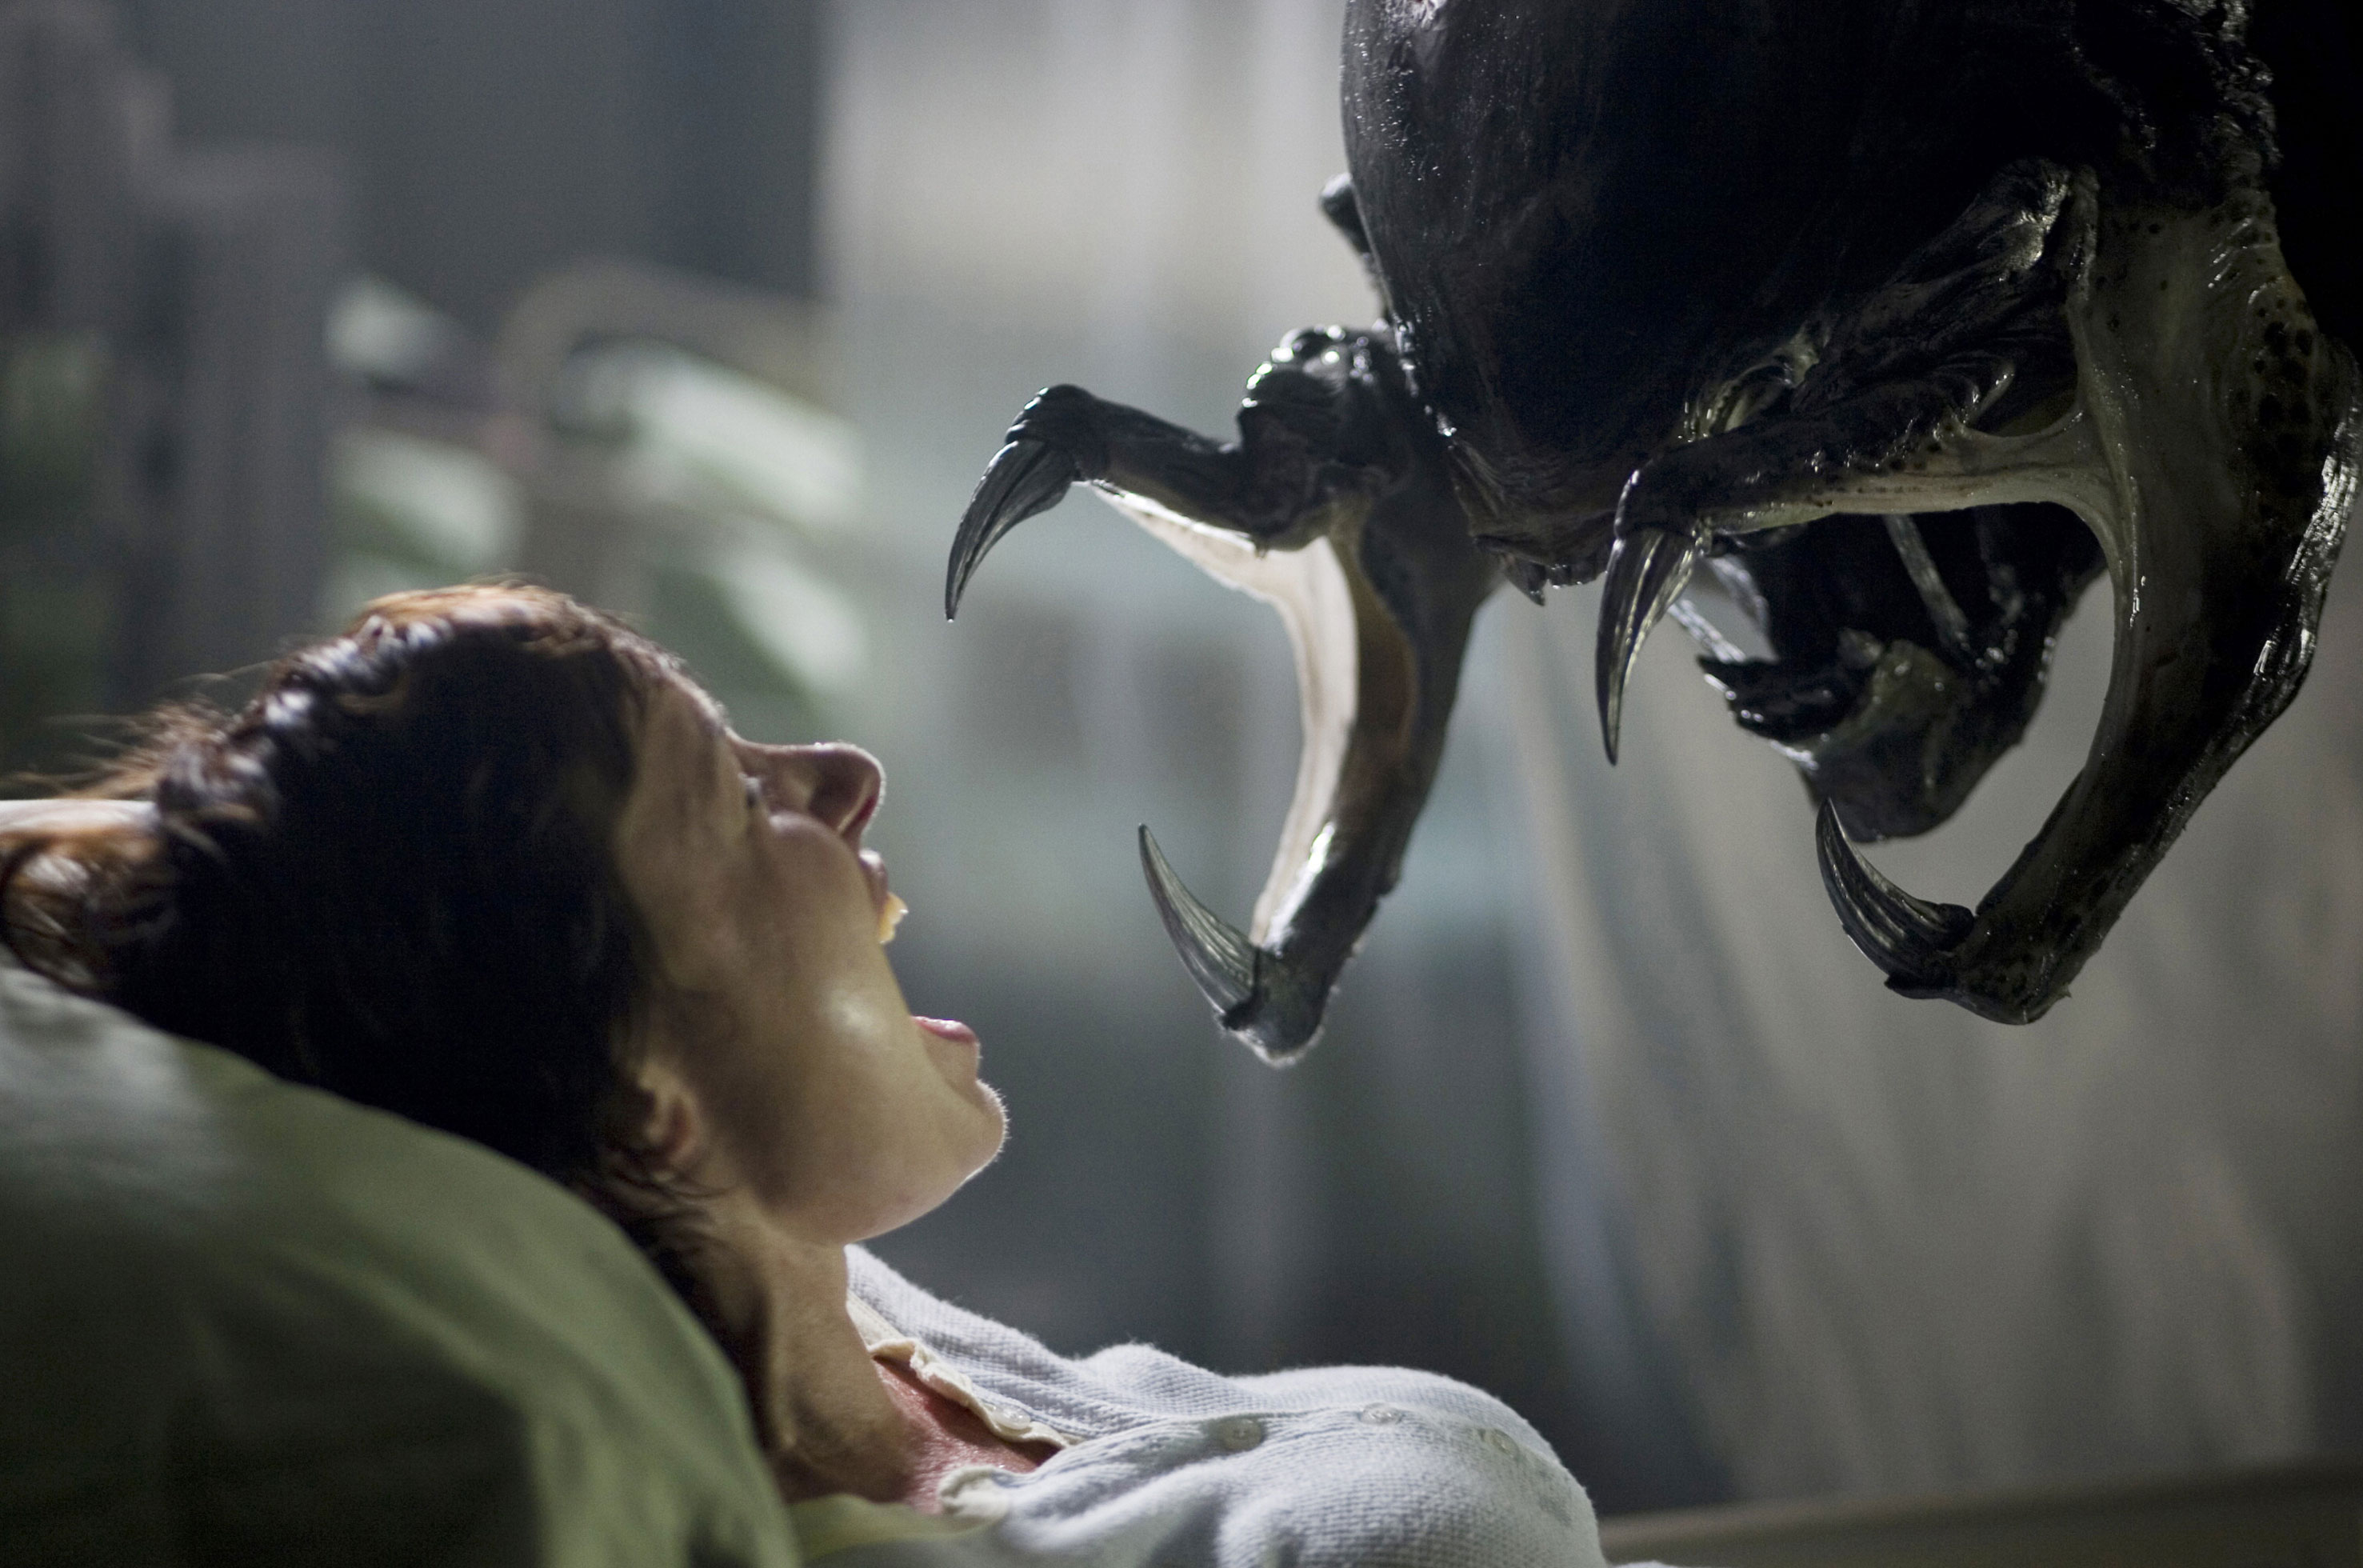 The alien goes to impregnate a pregnant woman (Victoria Bidewell) in AVPR Aliens vs Predator Requiem (2007)